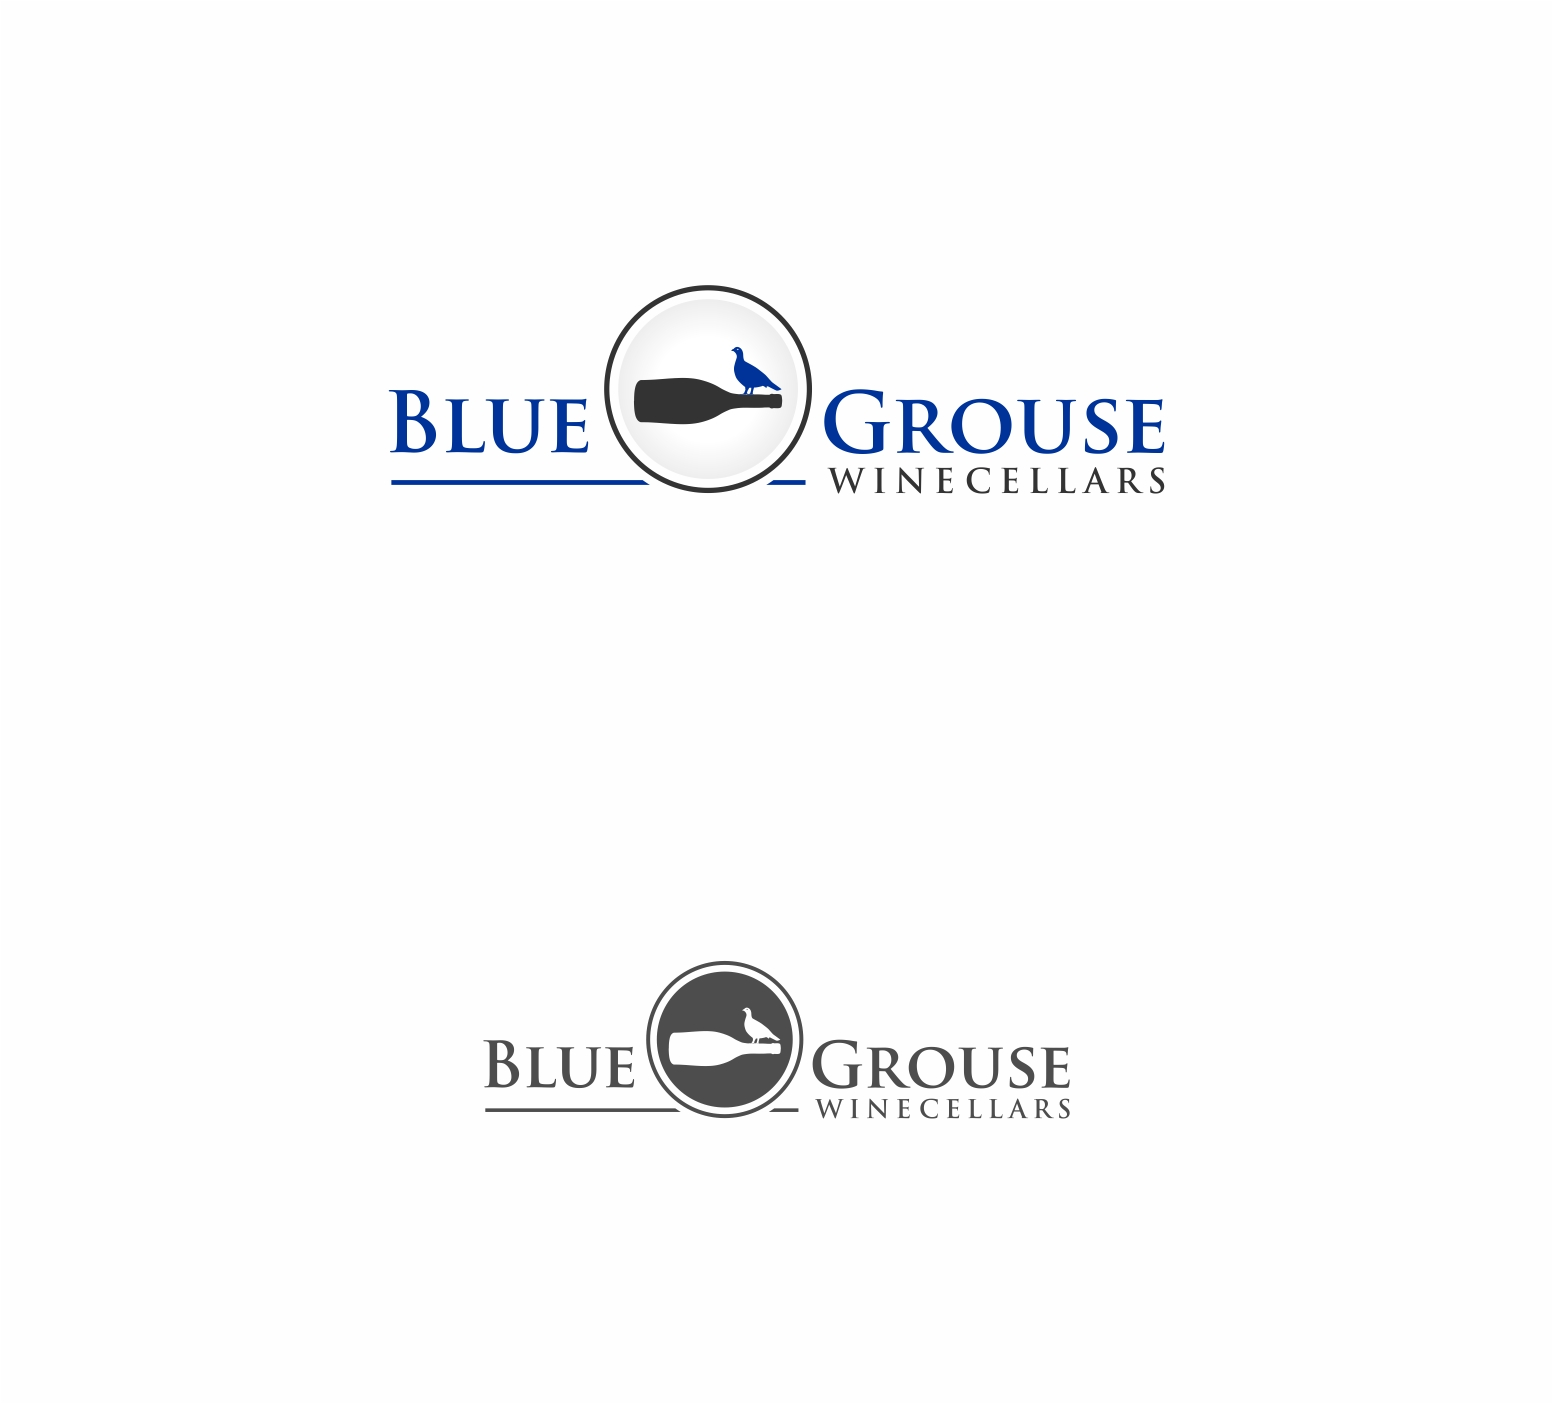 Logo Design by haidu - Entry No. 135 in the Logo Design Contest Creative Logo Design for Blue Grouse Wine Cellars.